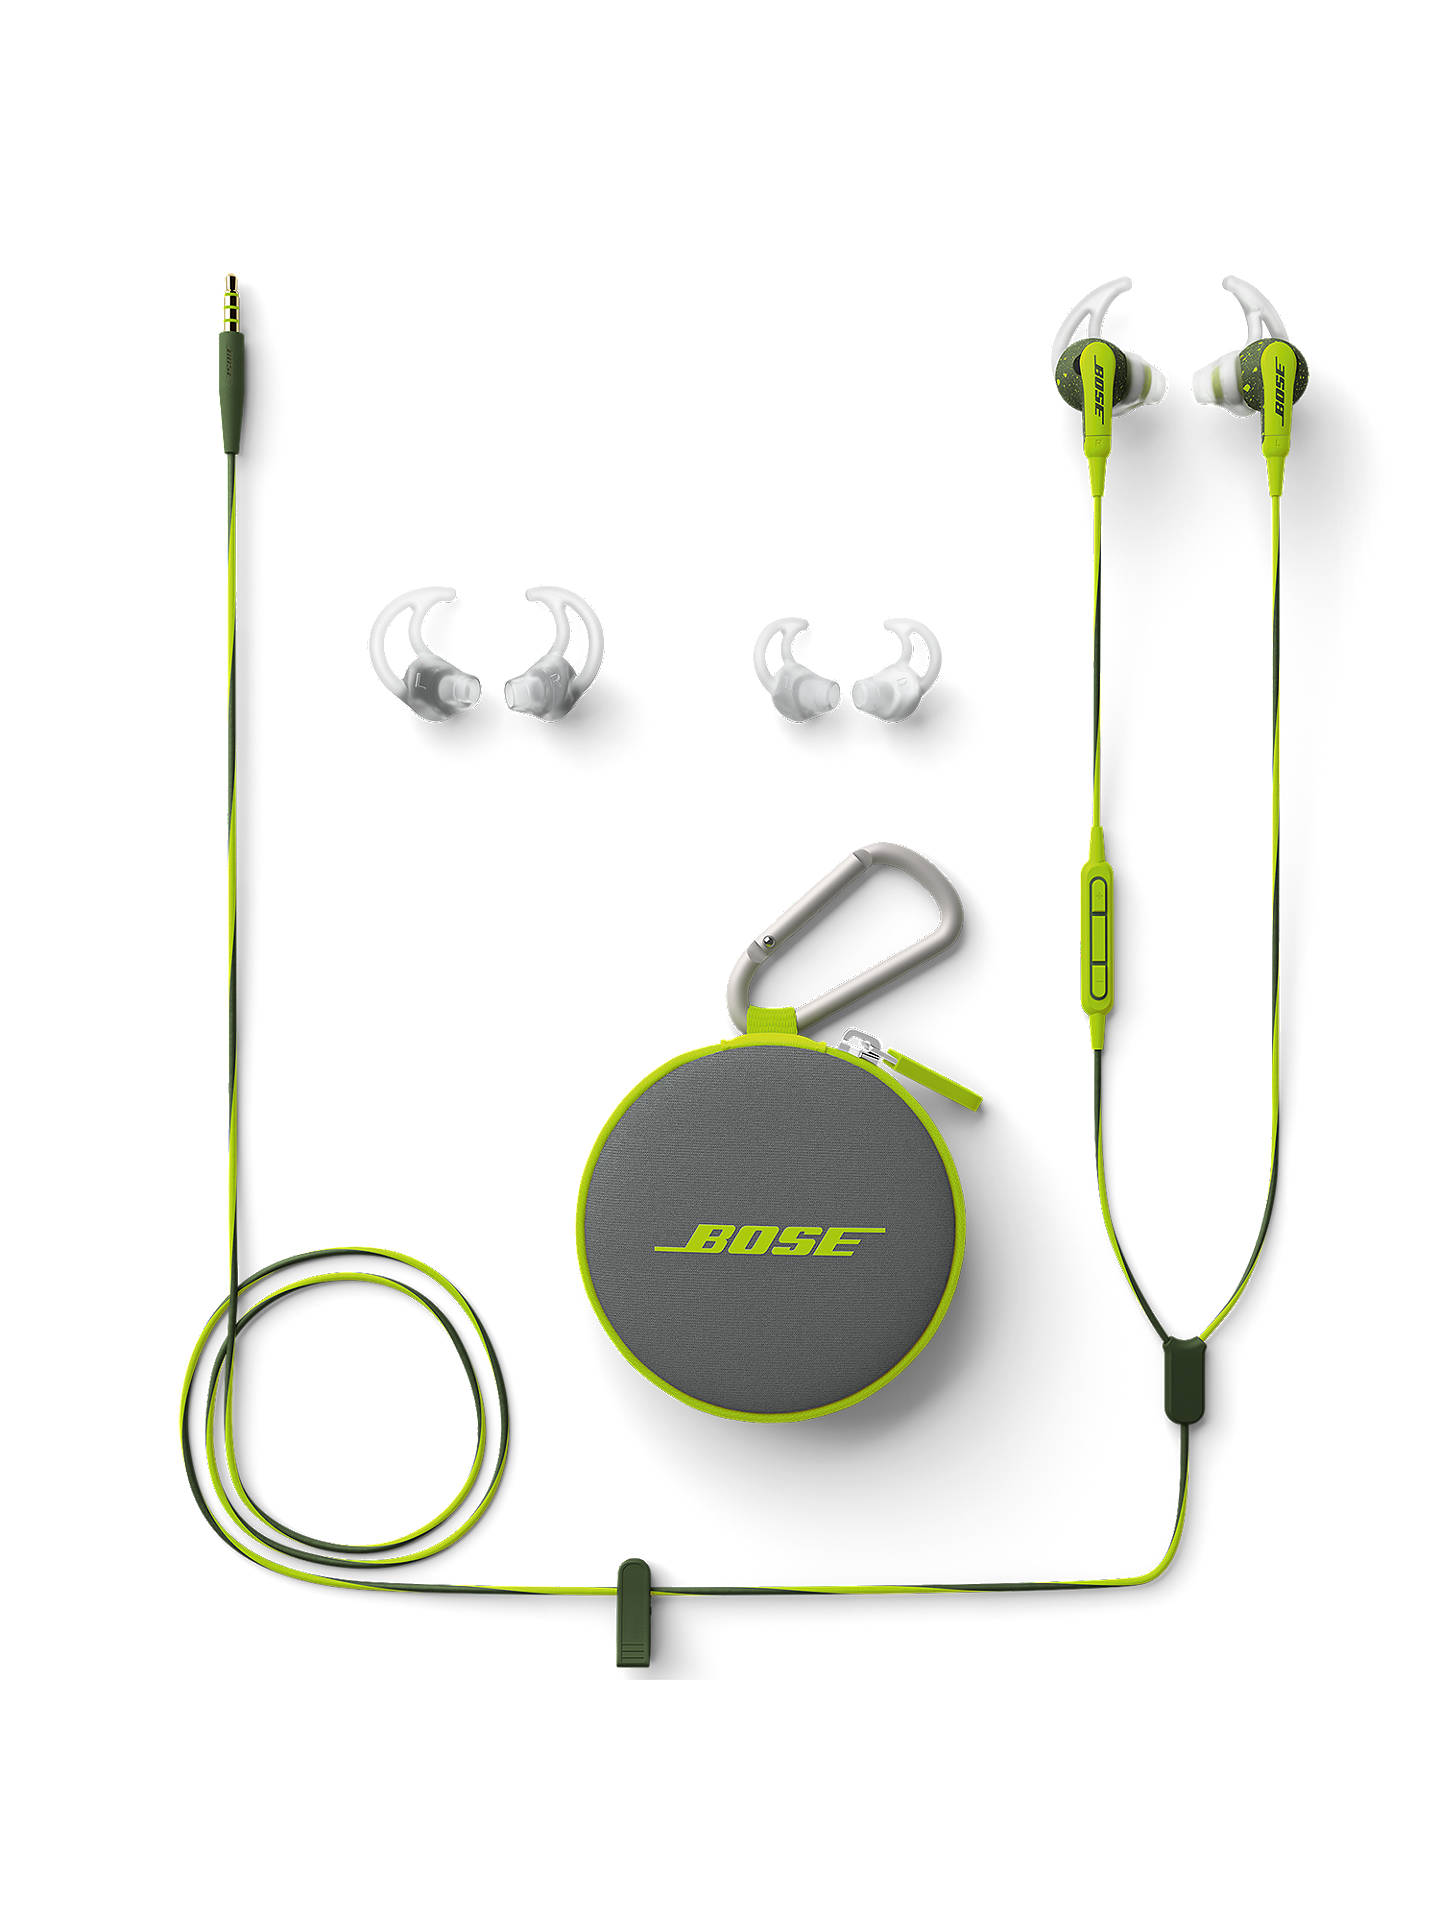 Buy Bose® SoundSport™ Sweat & Weather-Resistant In-Ear Headphones With 3-Button In-Line Remote and Carry Case, Energy Green Online at johnlewis.com